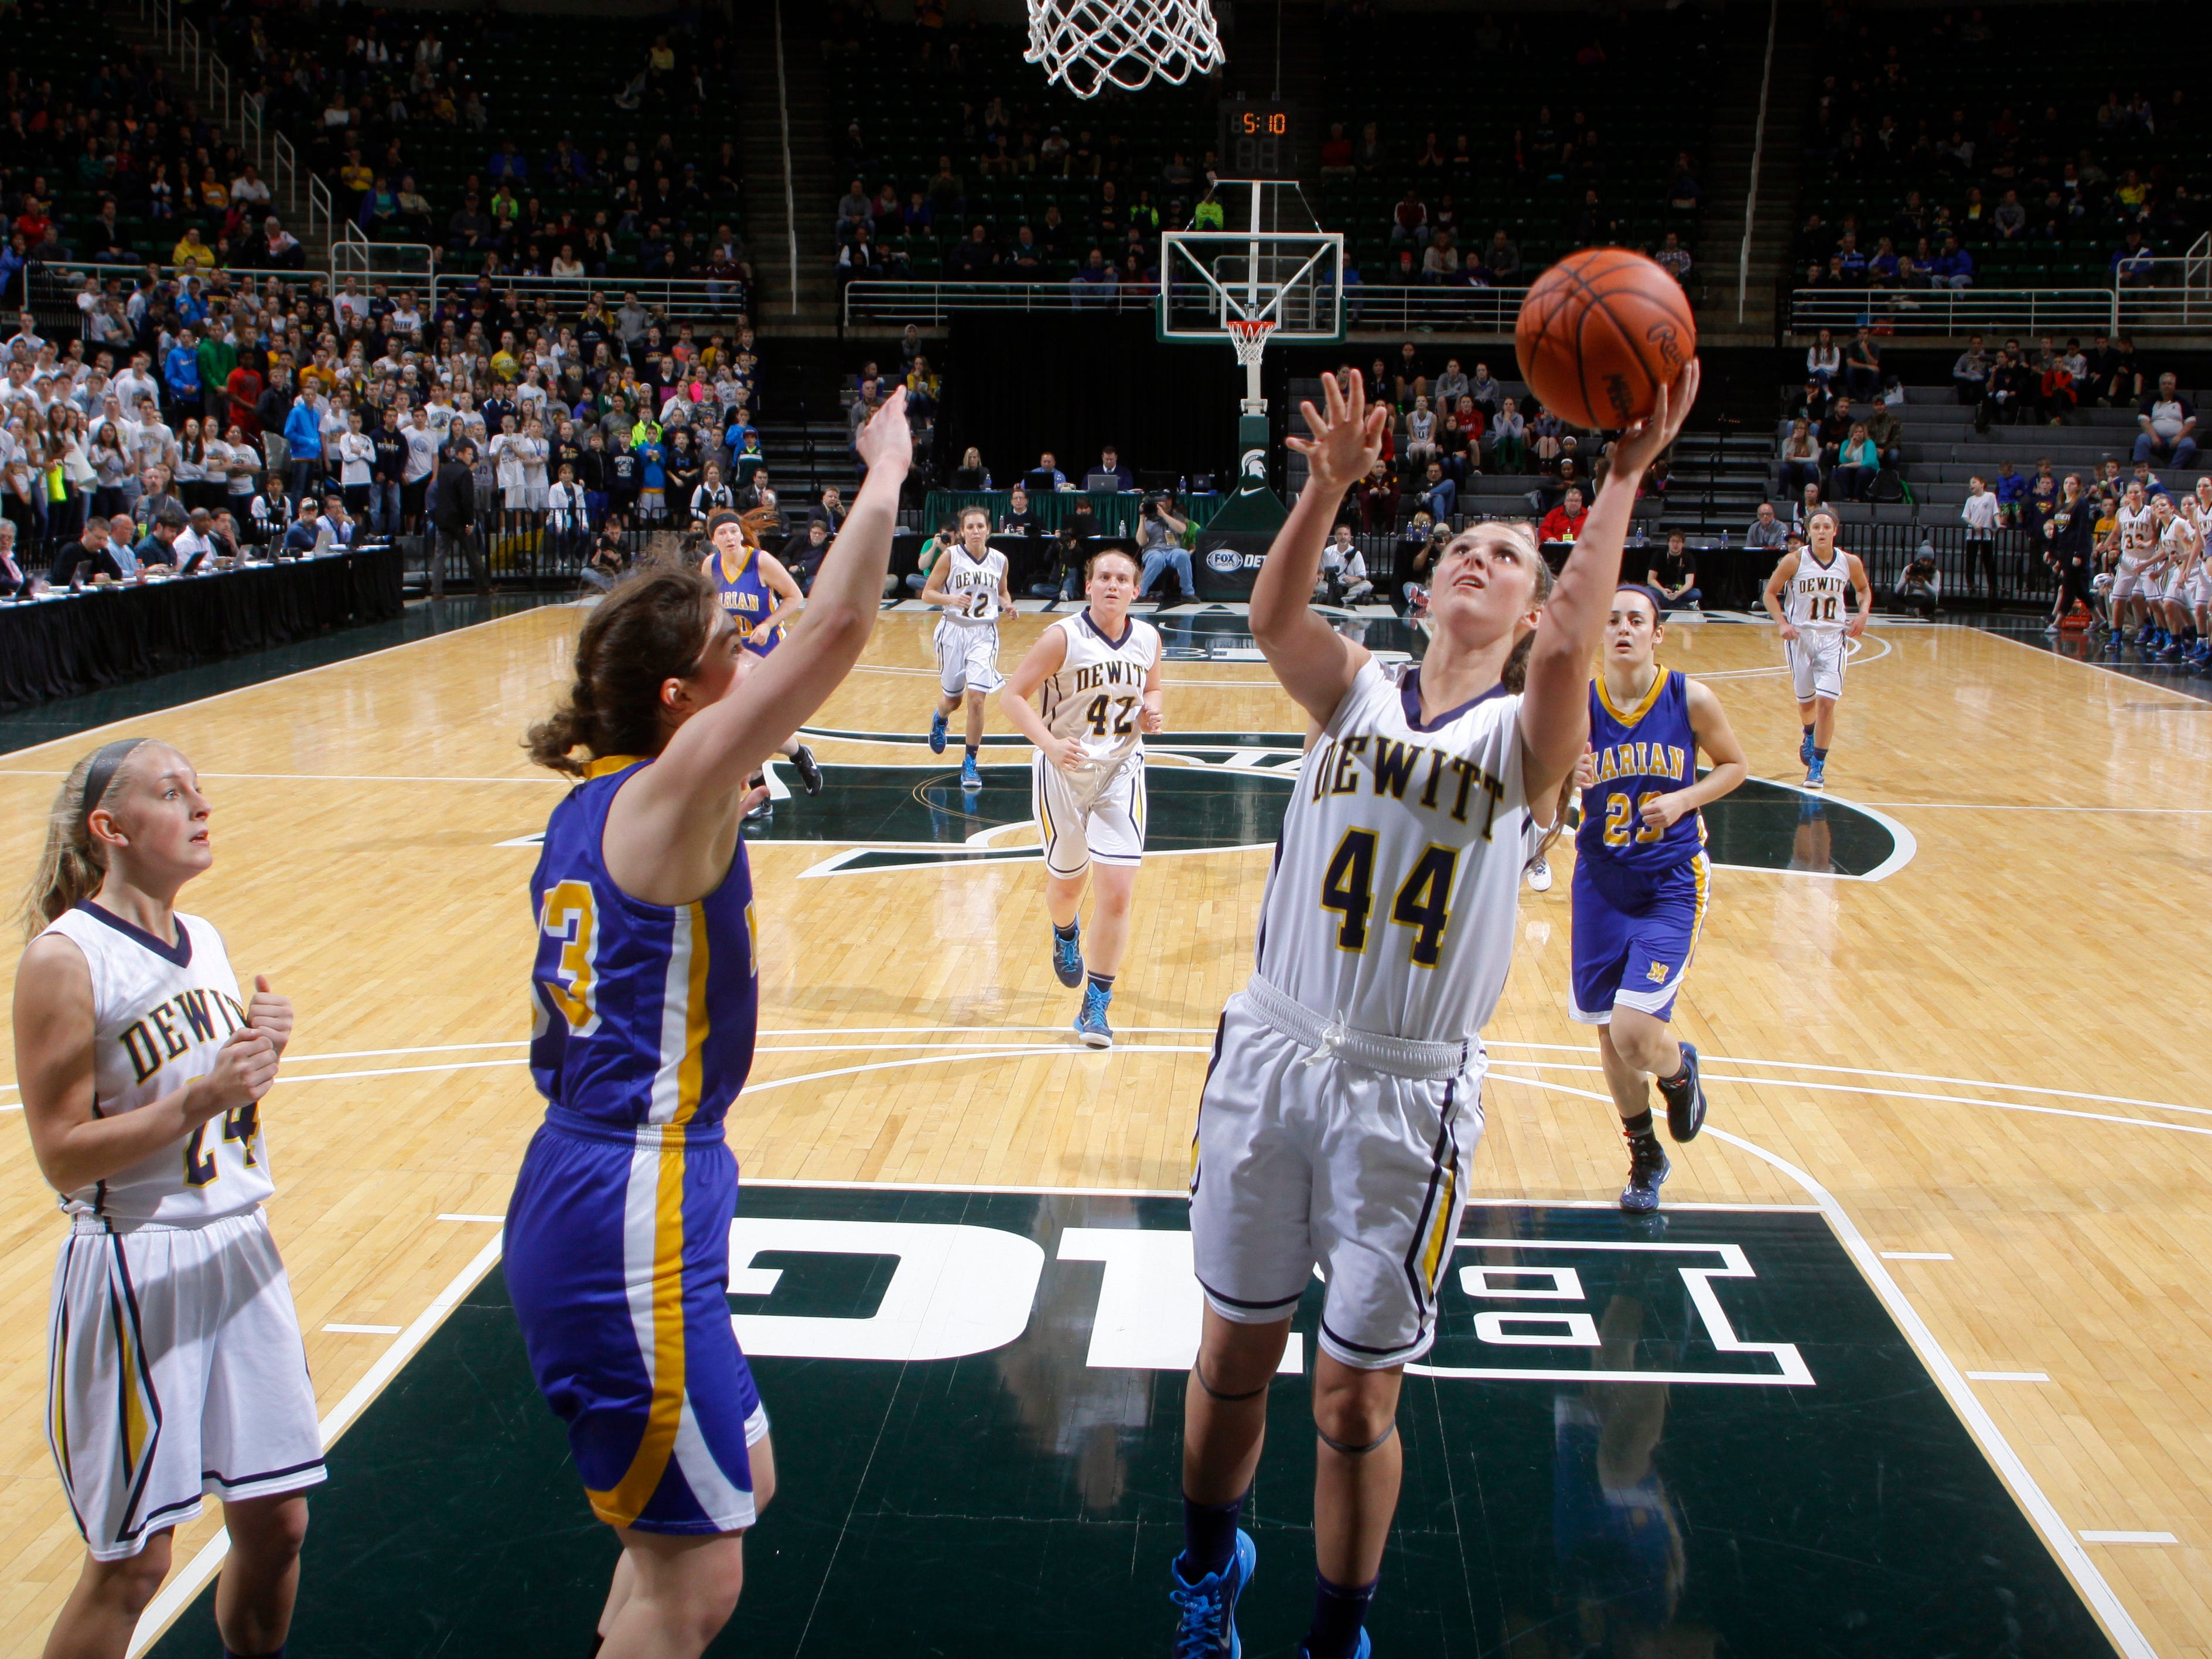 DeWitt's Lilly George (44) puts up a shot against Bloomfield Hills Marian's Kara Holinski during their MHSAA Class A championship game Saturday, March 21, 2015, at the Breslin Center in East Lansing, Mich. DeWitt fell 51-37.